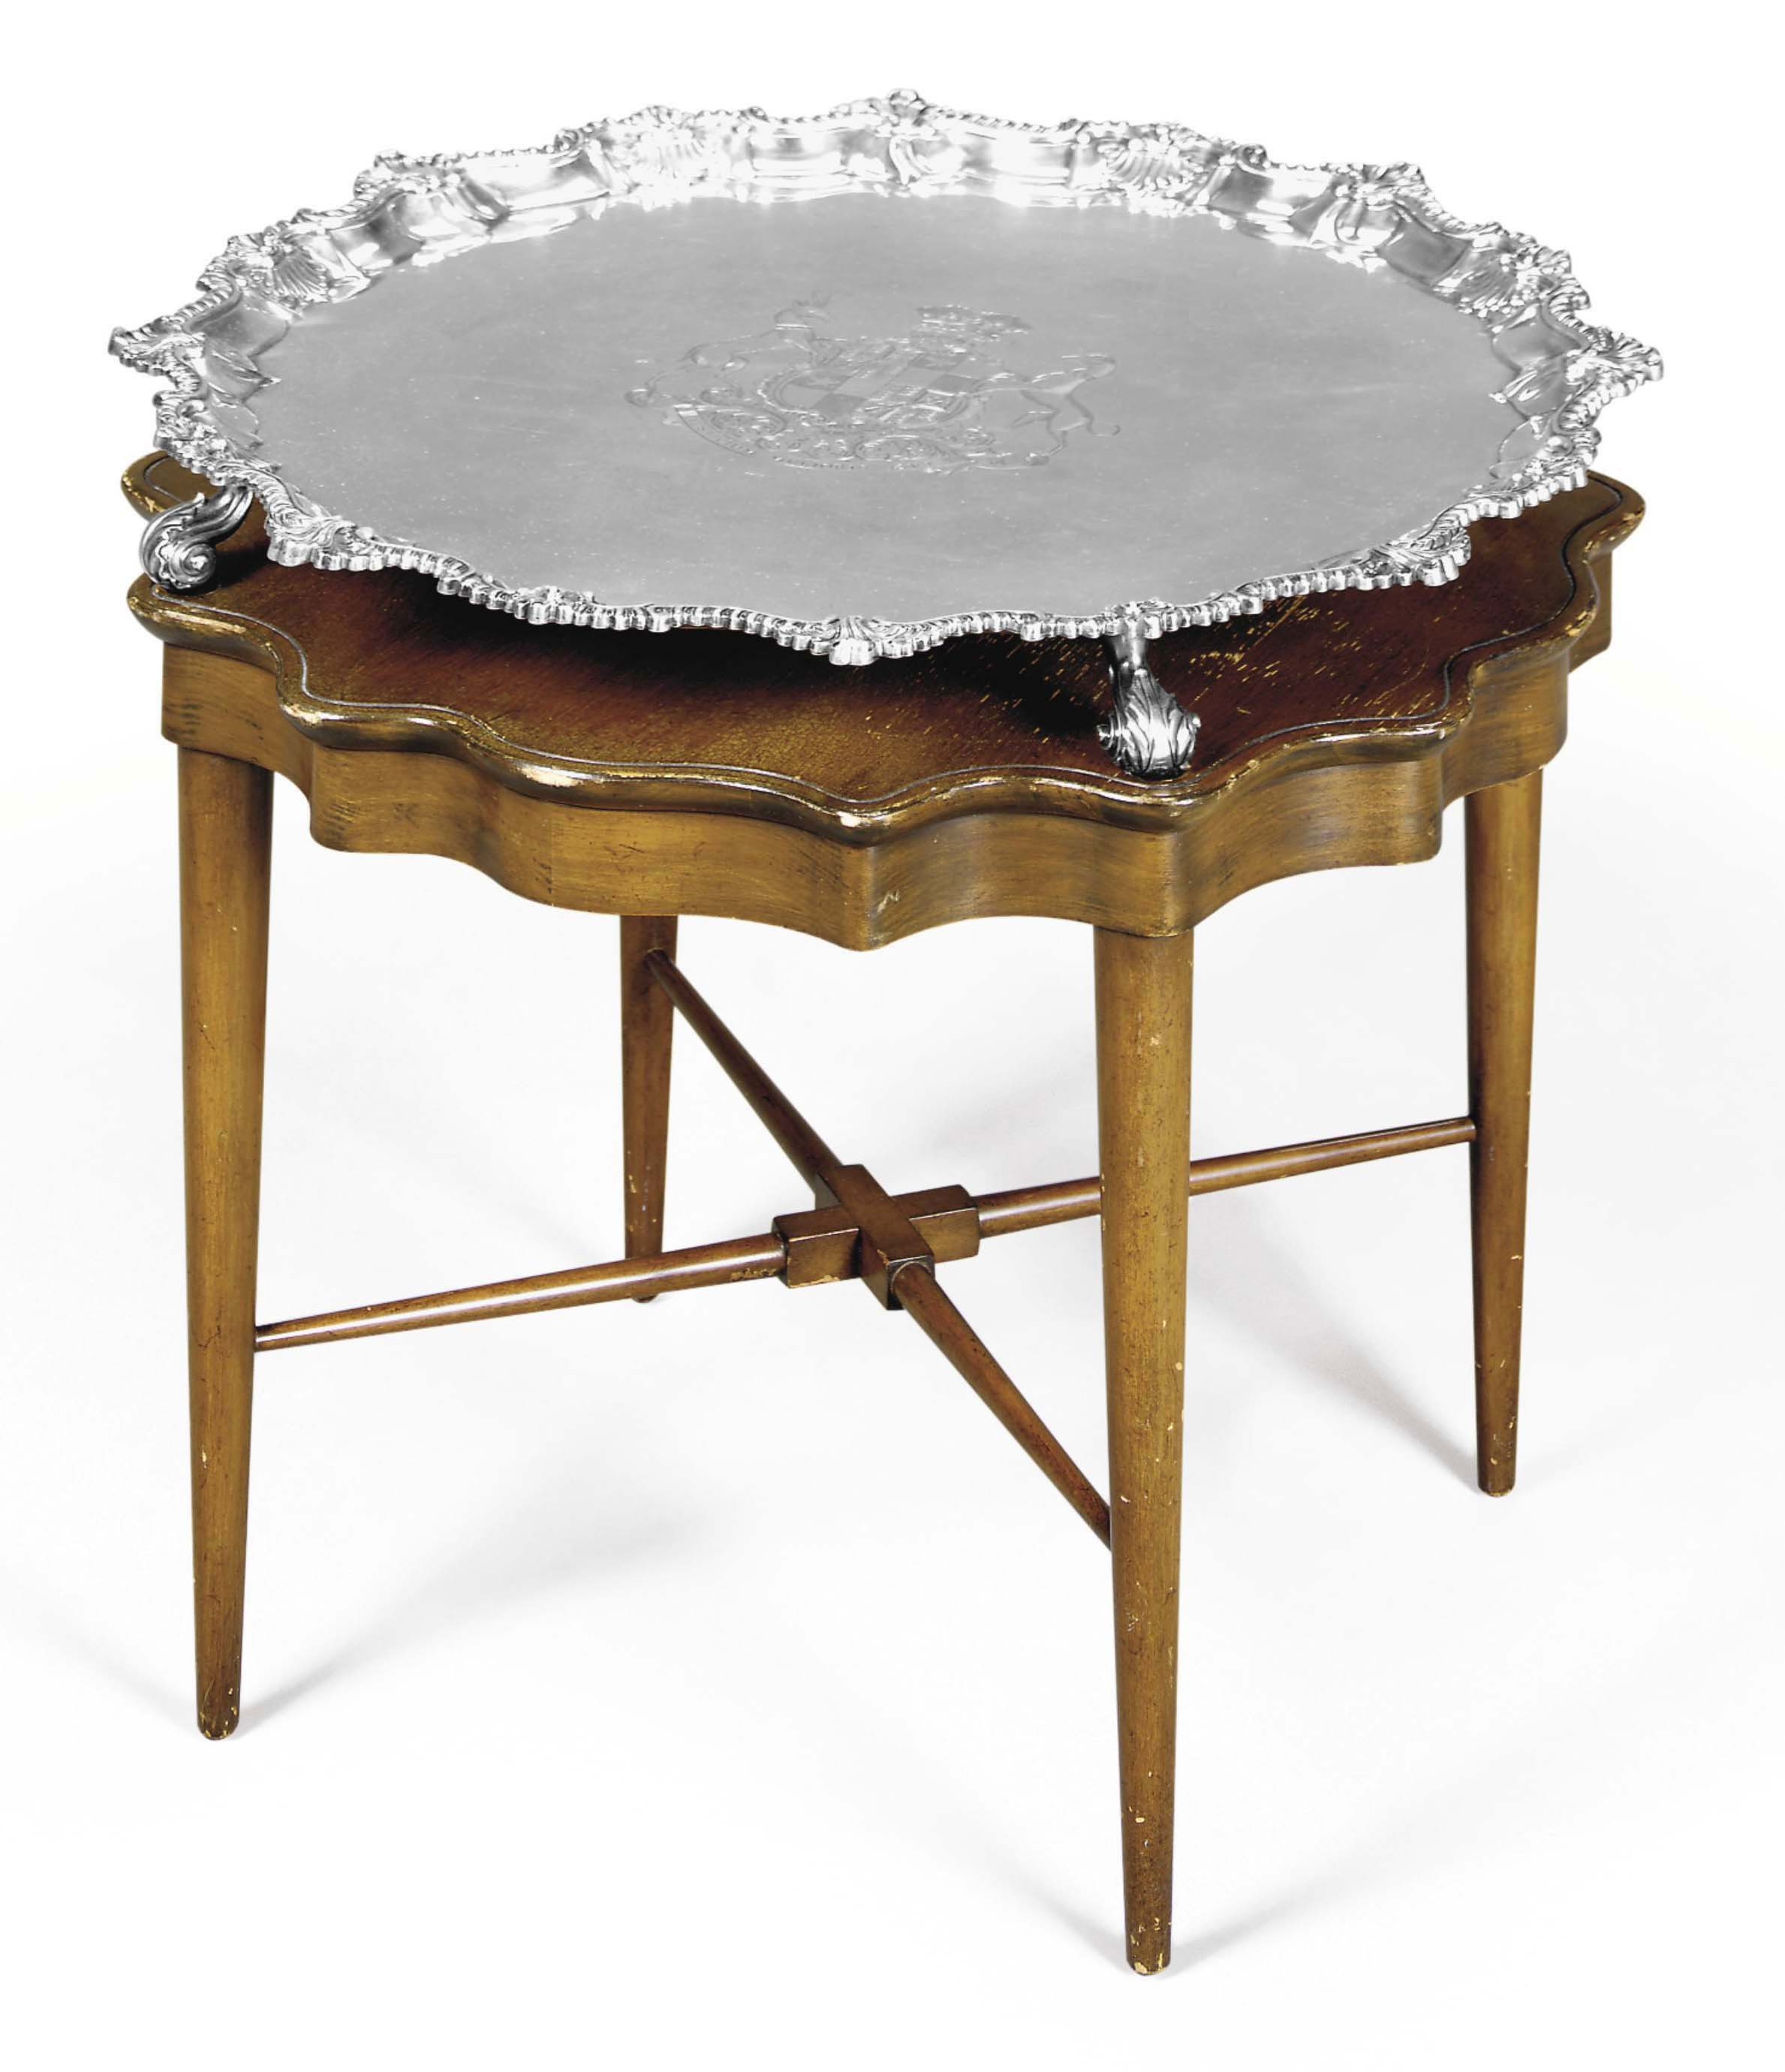 A LARGE GEORGE III SILVER SALVER, FITTED AS A TABLE